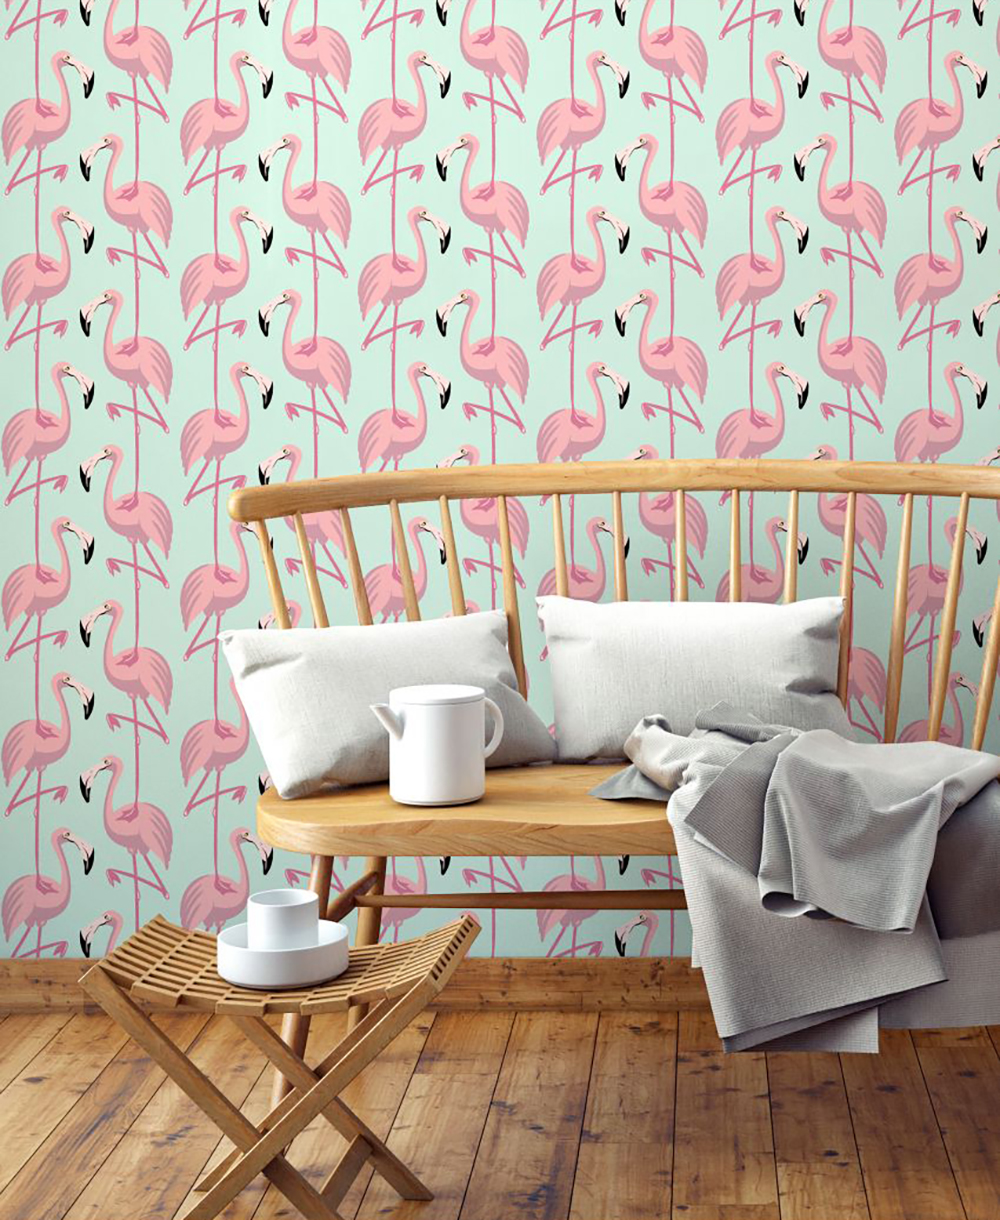 Flamingo premium wallpaper by papermint - Decorate your home with flamingos | Aliz's Wonderland